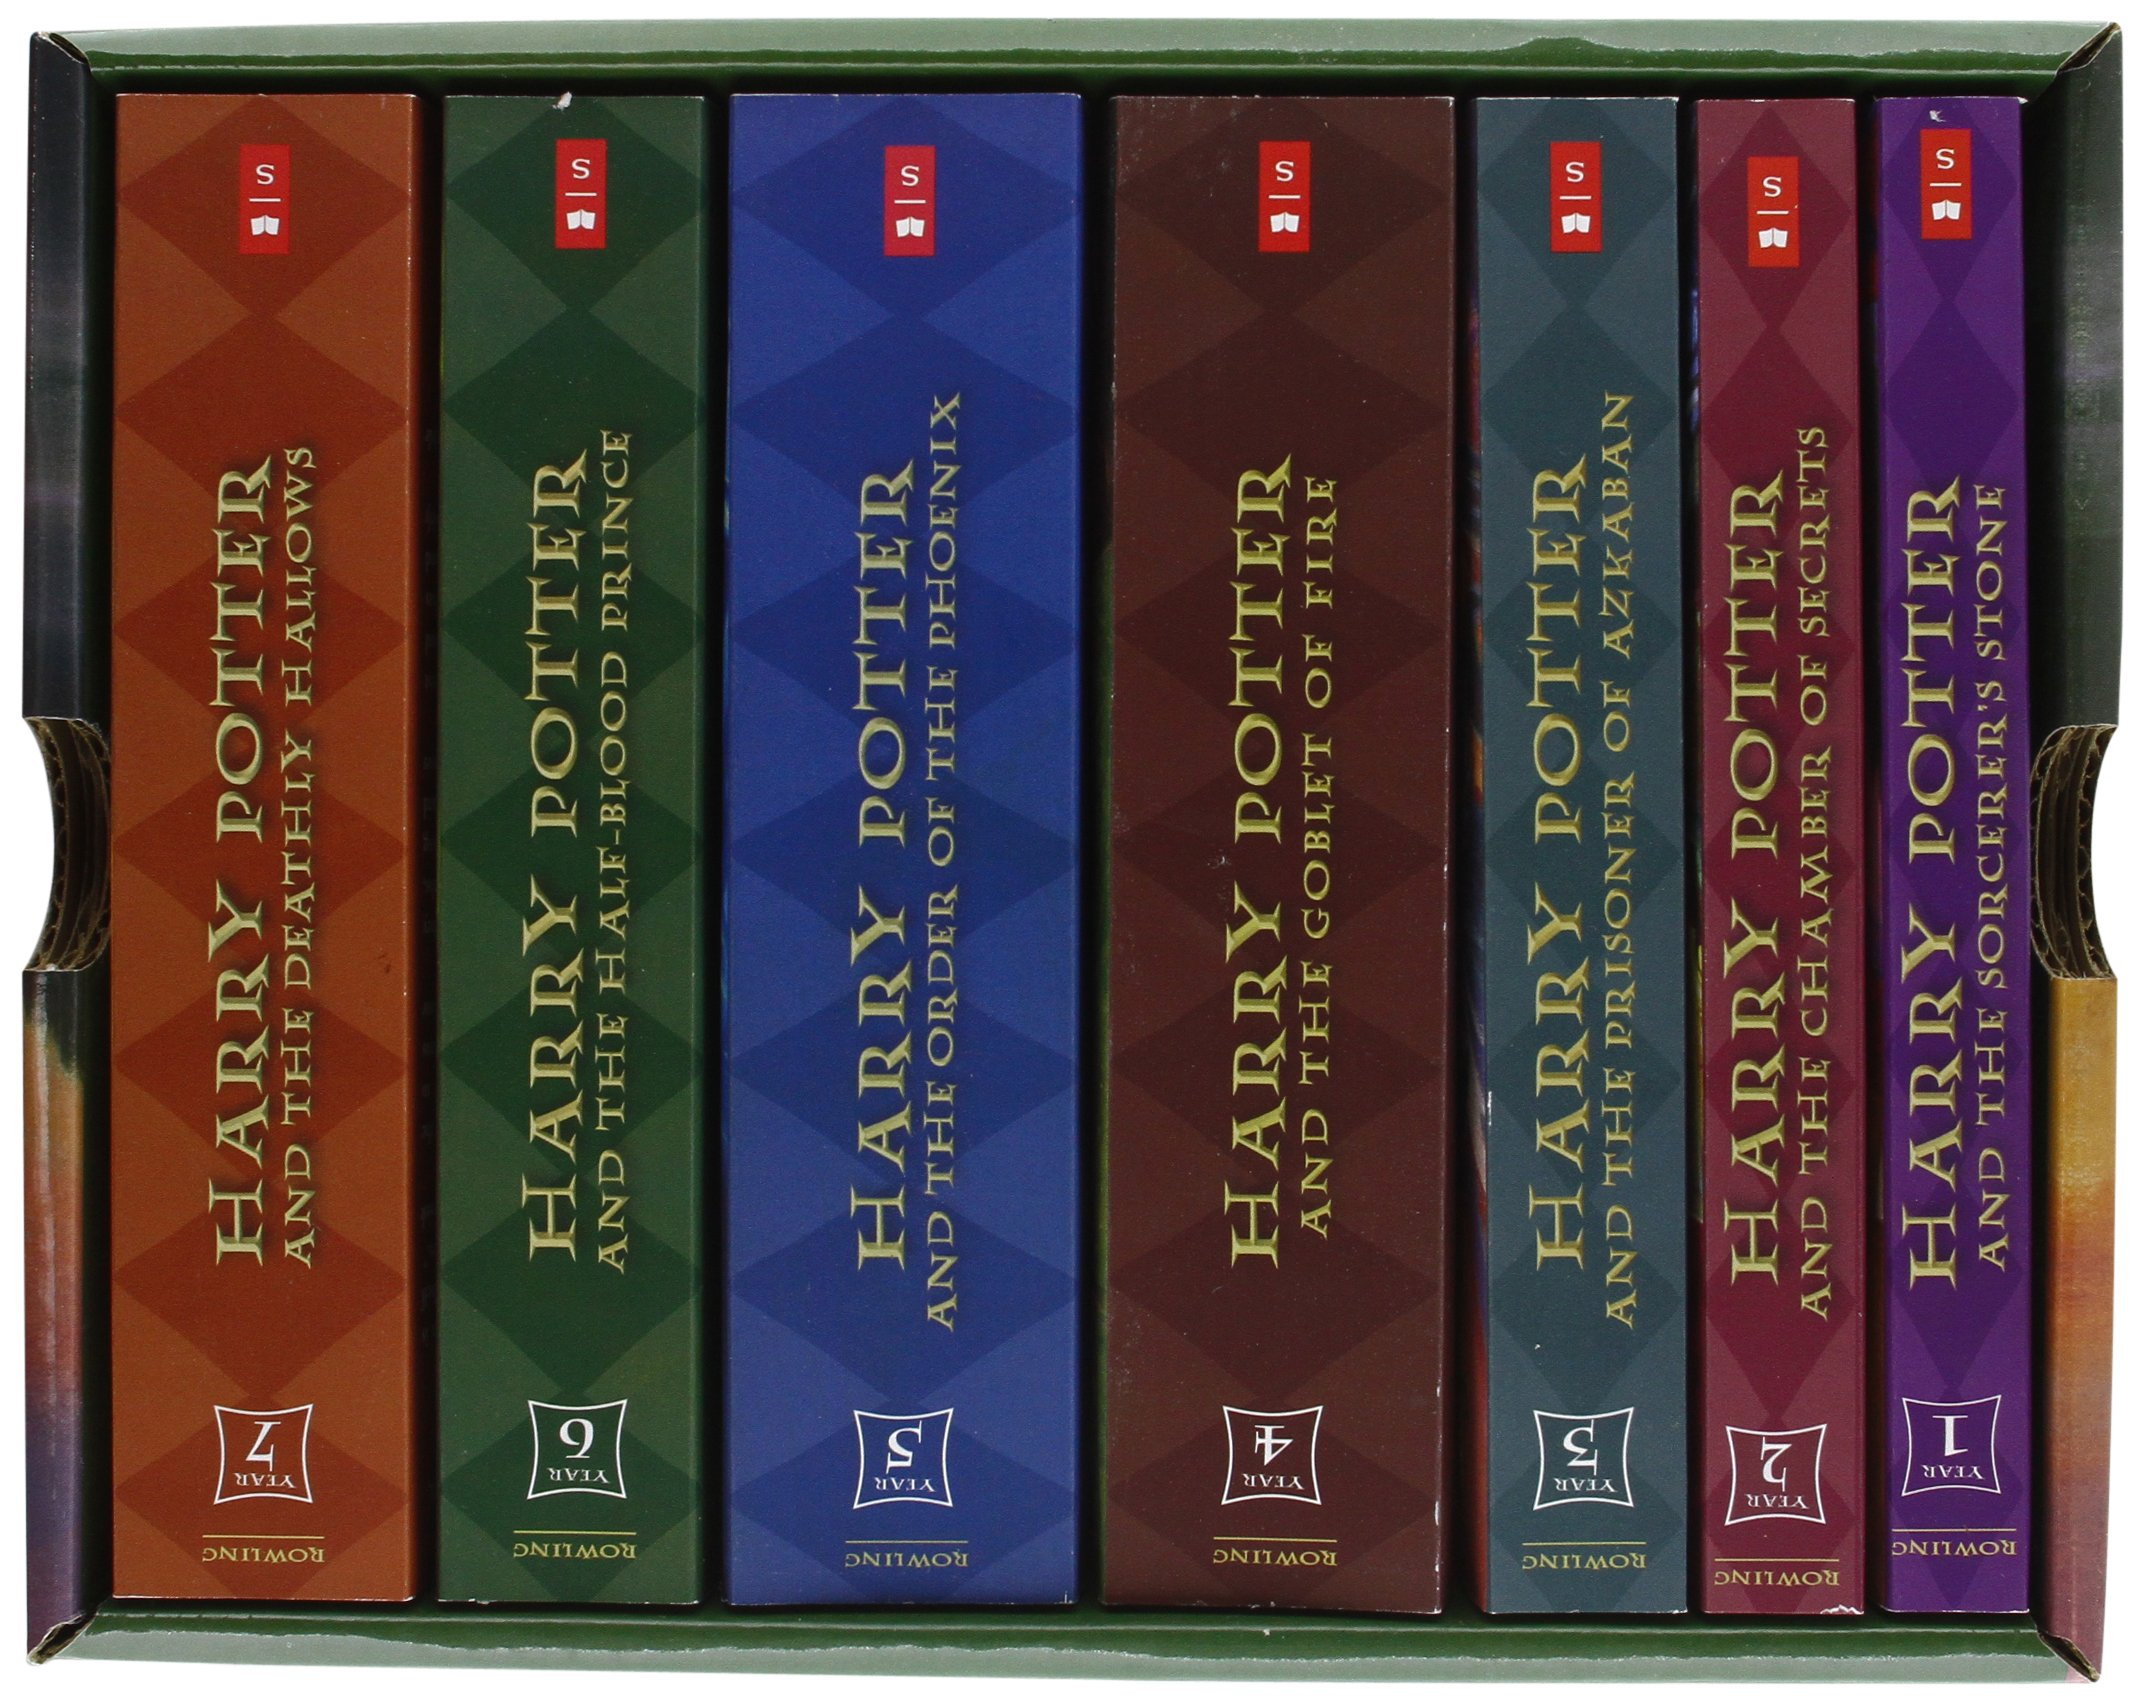 Harry Potter (series) by J. K. Rowling